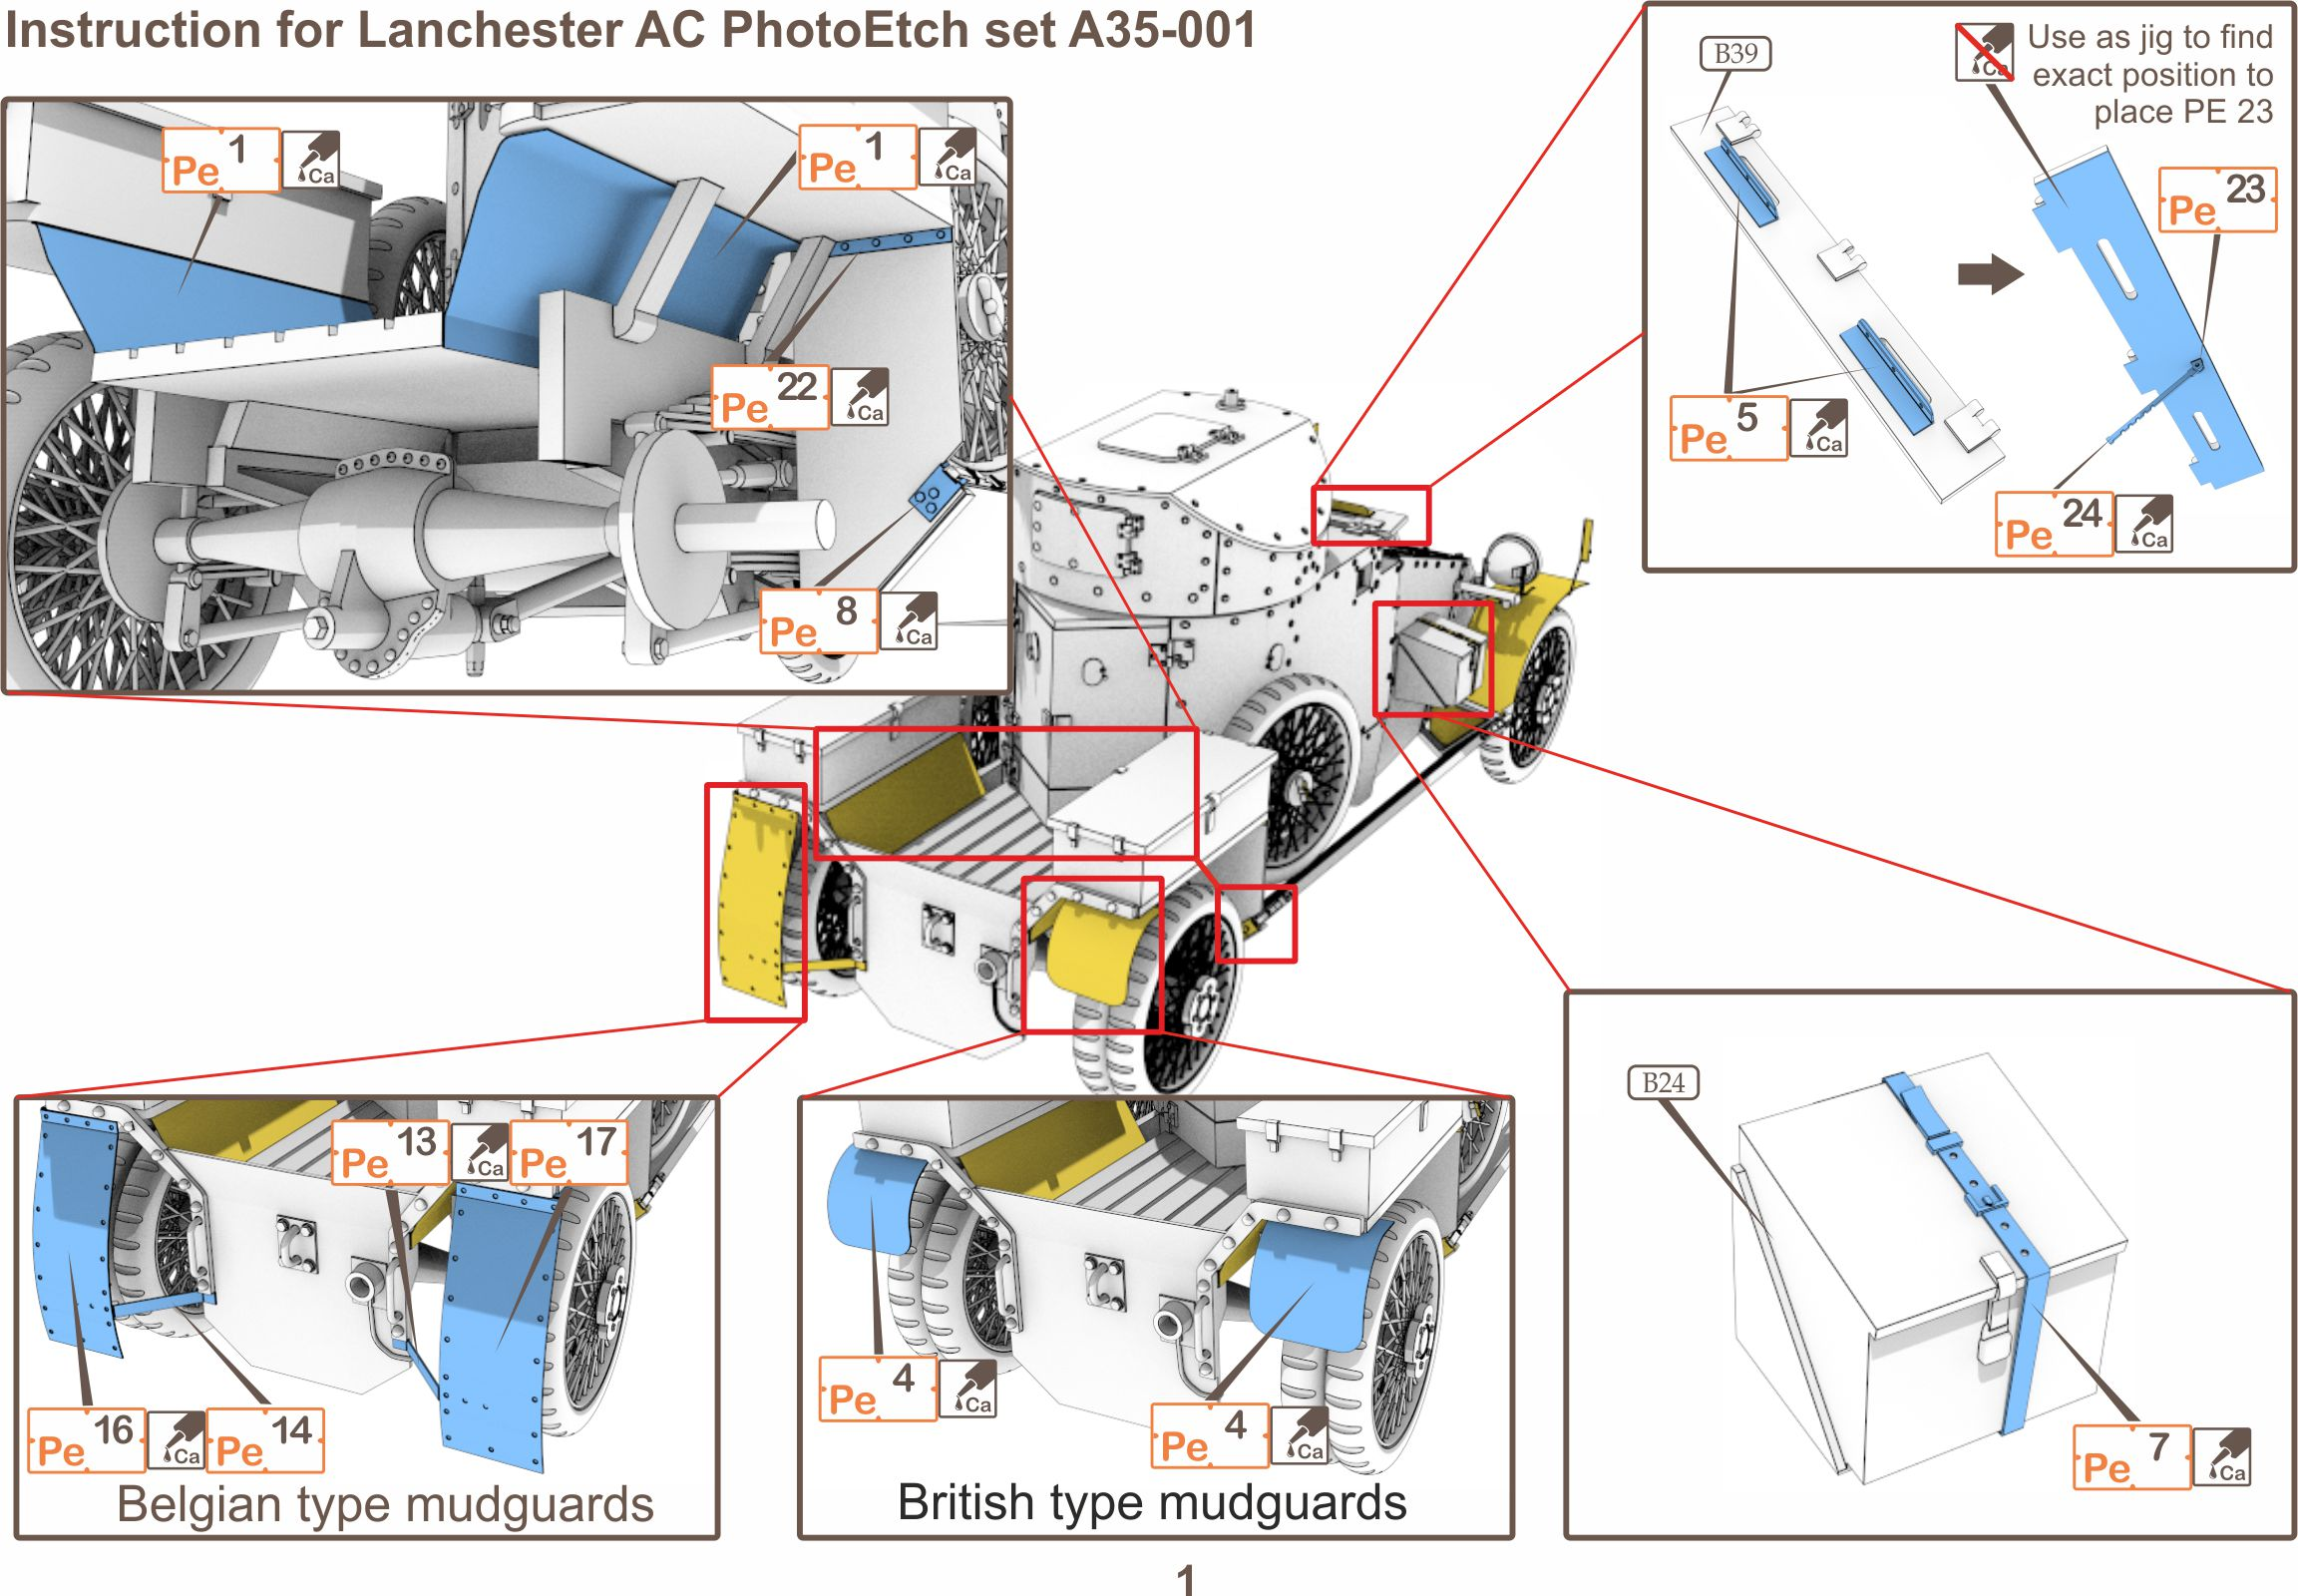 A35-001 Lanchester instruction1.jpg